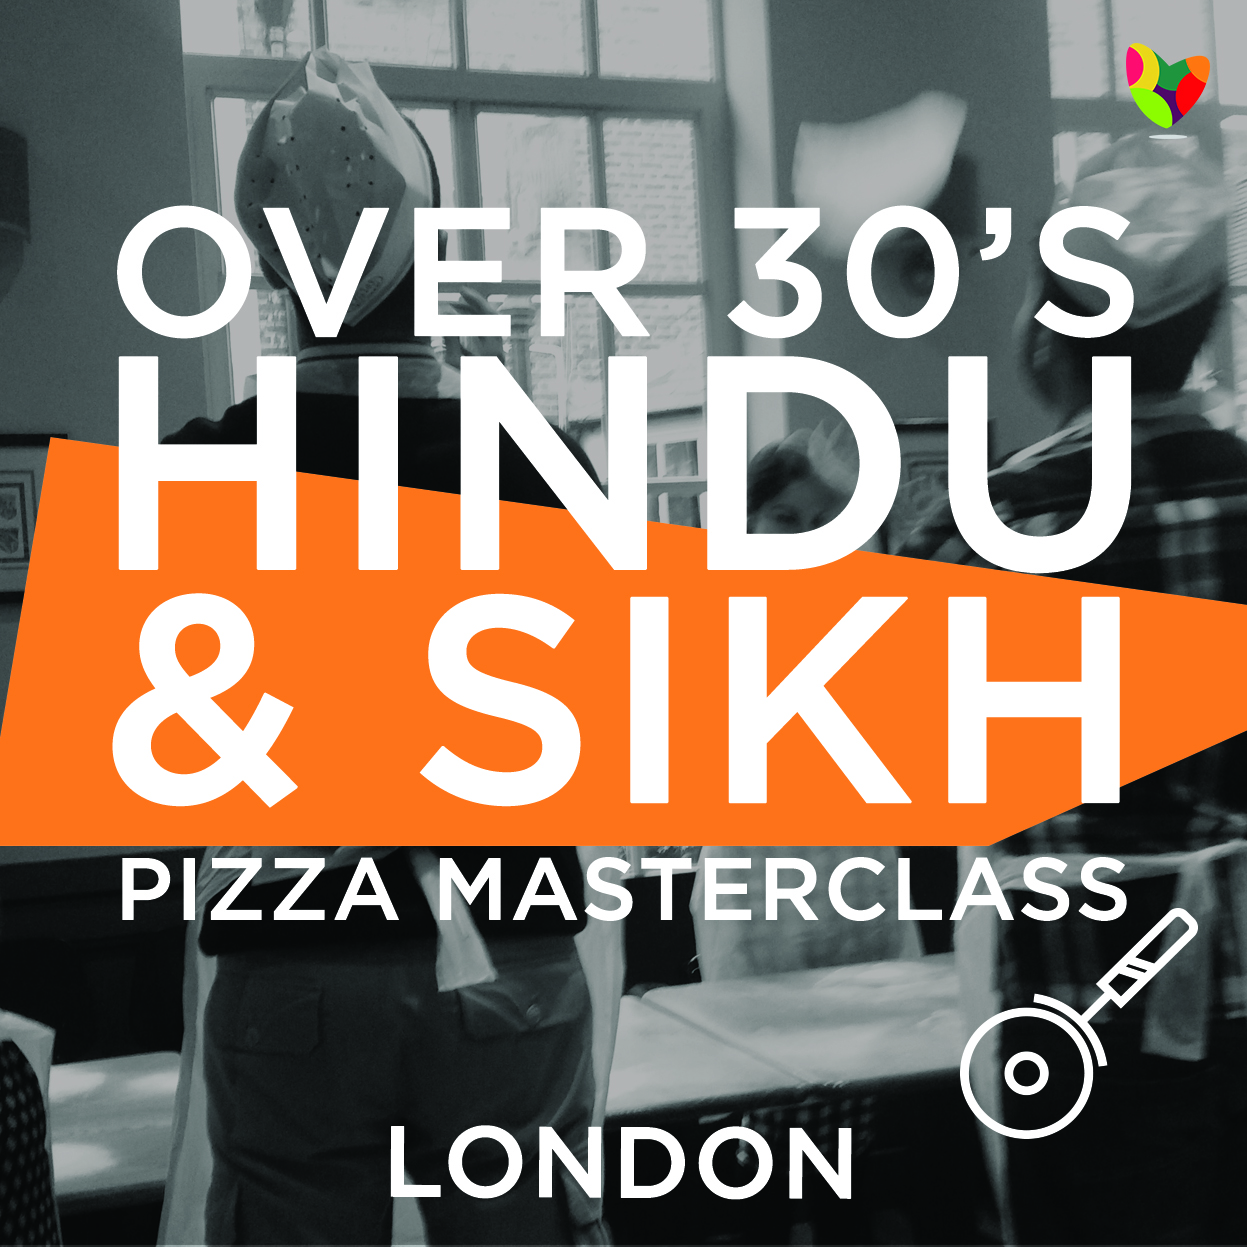 hindu and sikh speed dating manchester Date masi, fun, casual, activity based singles events for hindu and sikh  professional  an opinion based on a dating site profile or during a 3-minute  speed date.